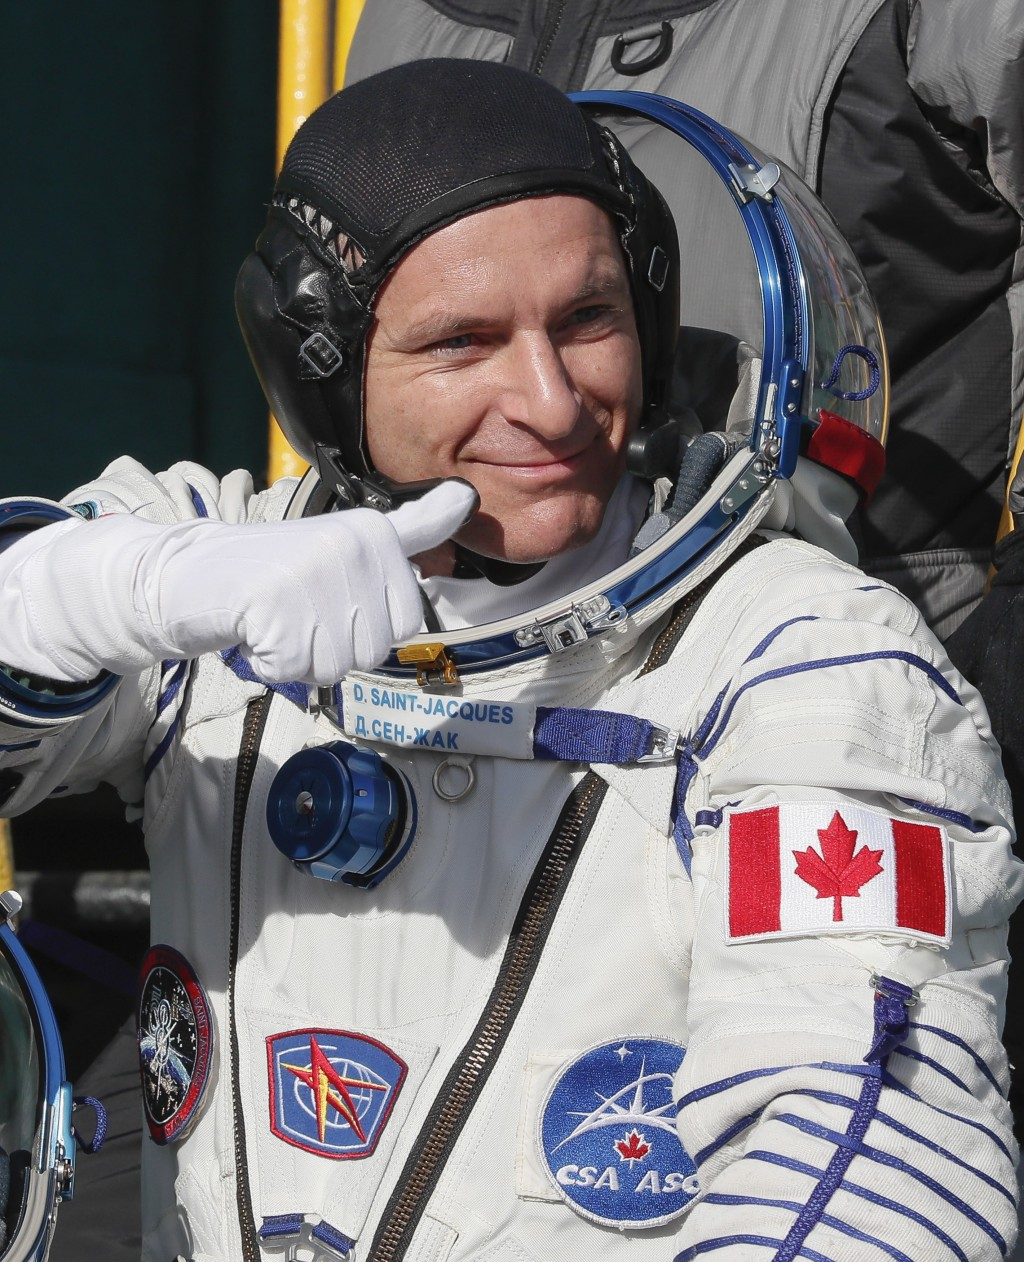 David Saint Jacques, crew member of the mission to the International Space Station, ISS, waves as he boards the rocket prior to the launch of Soyuz-FG